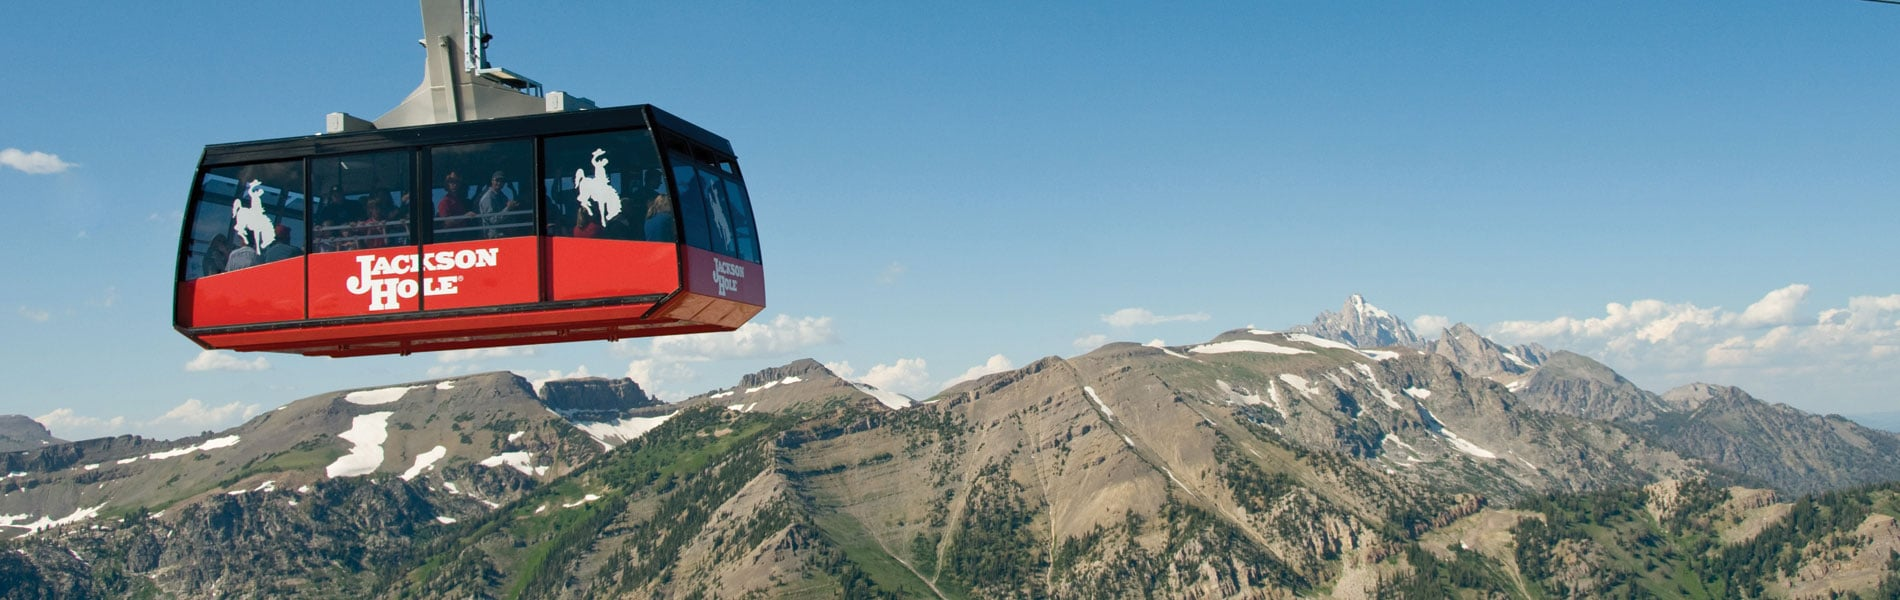 Jackson hole tram in the summer time.